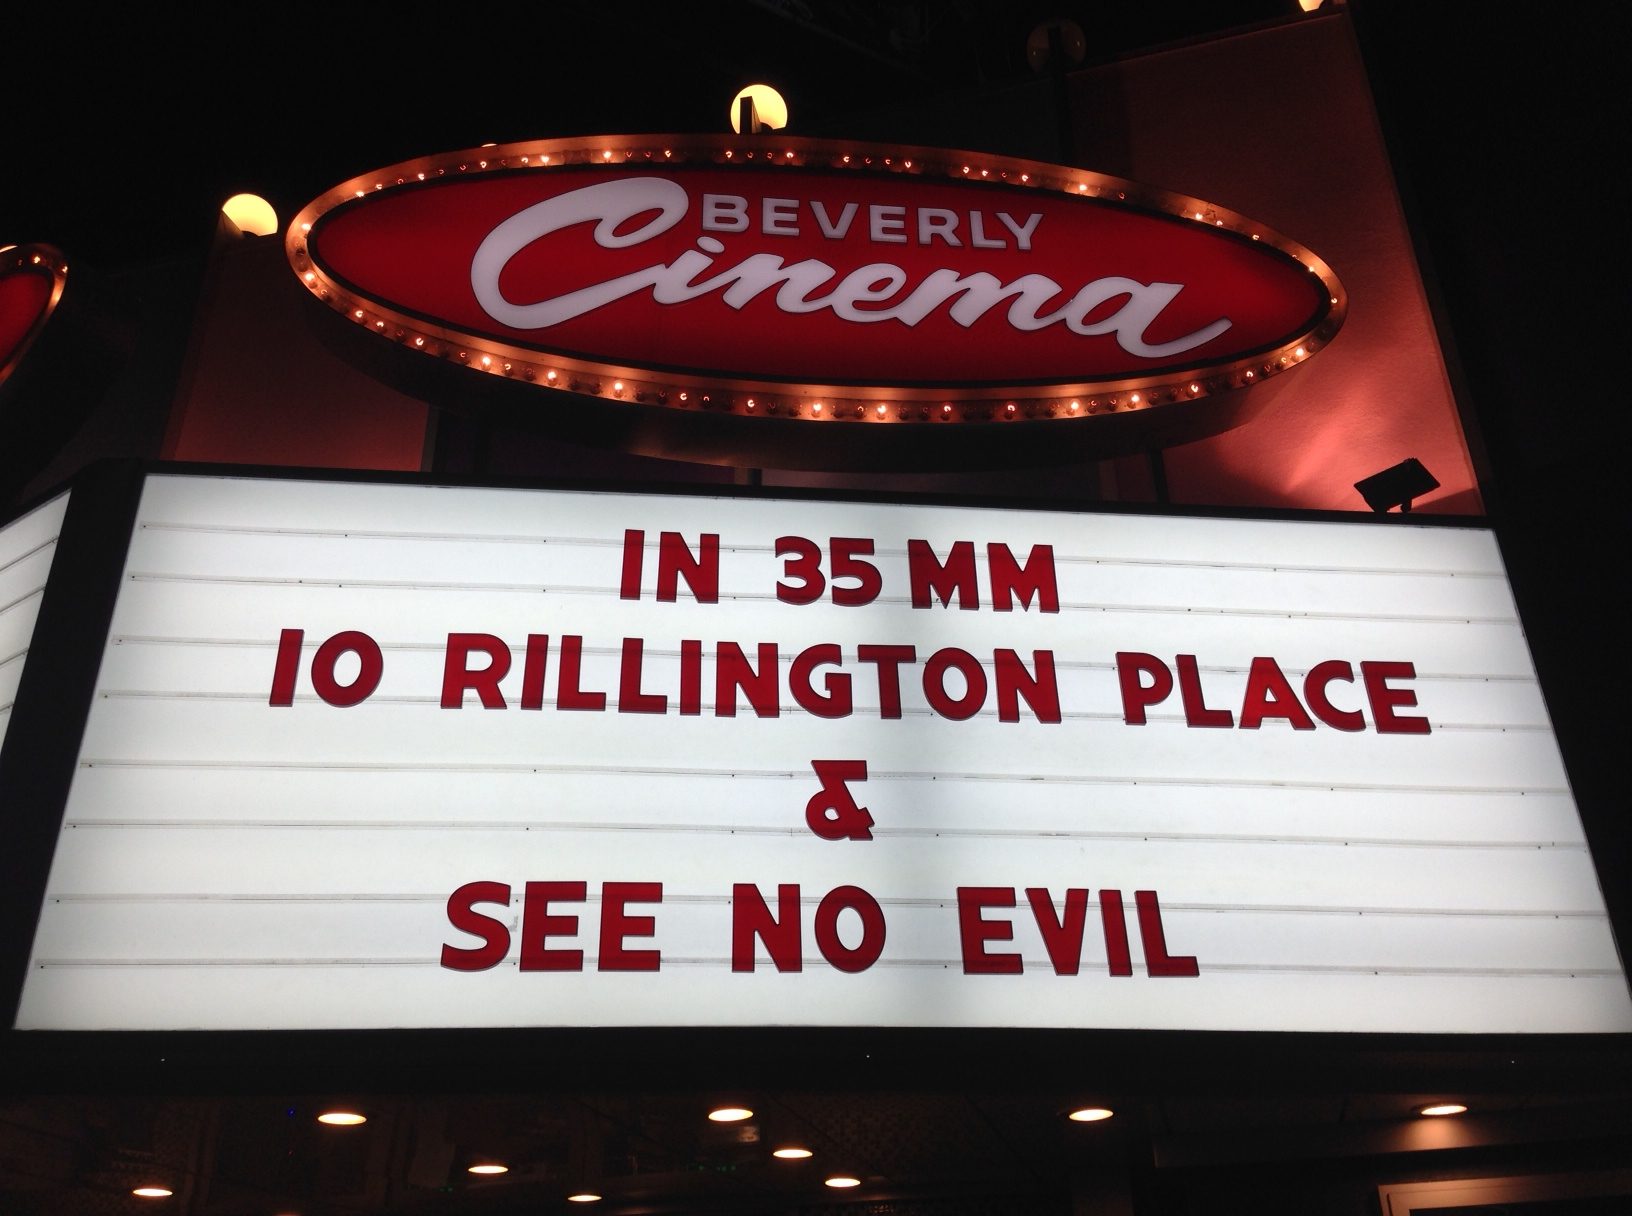 10 Rillington Place with See No Evil